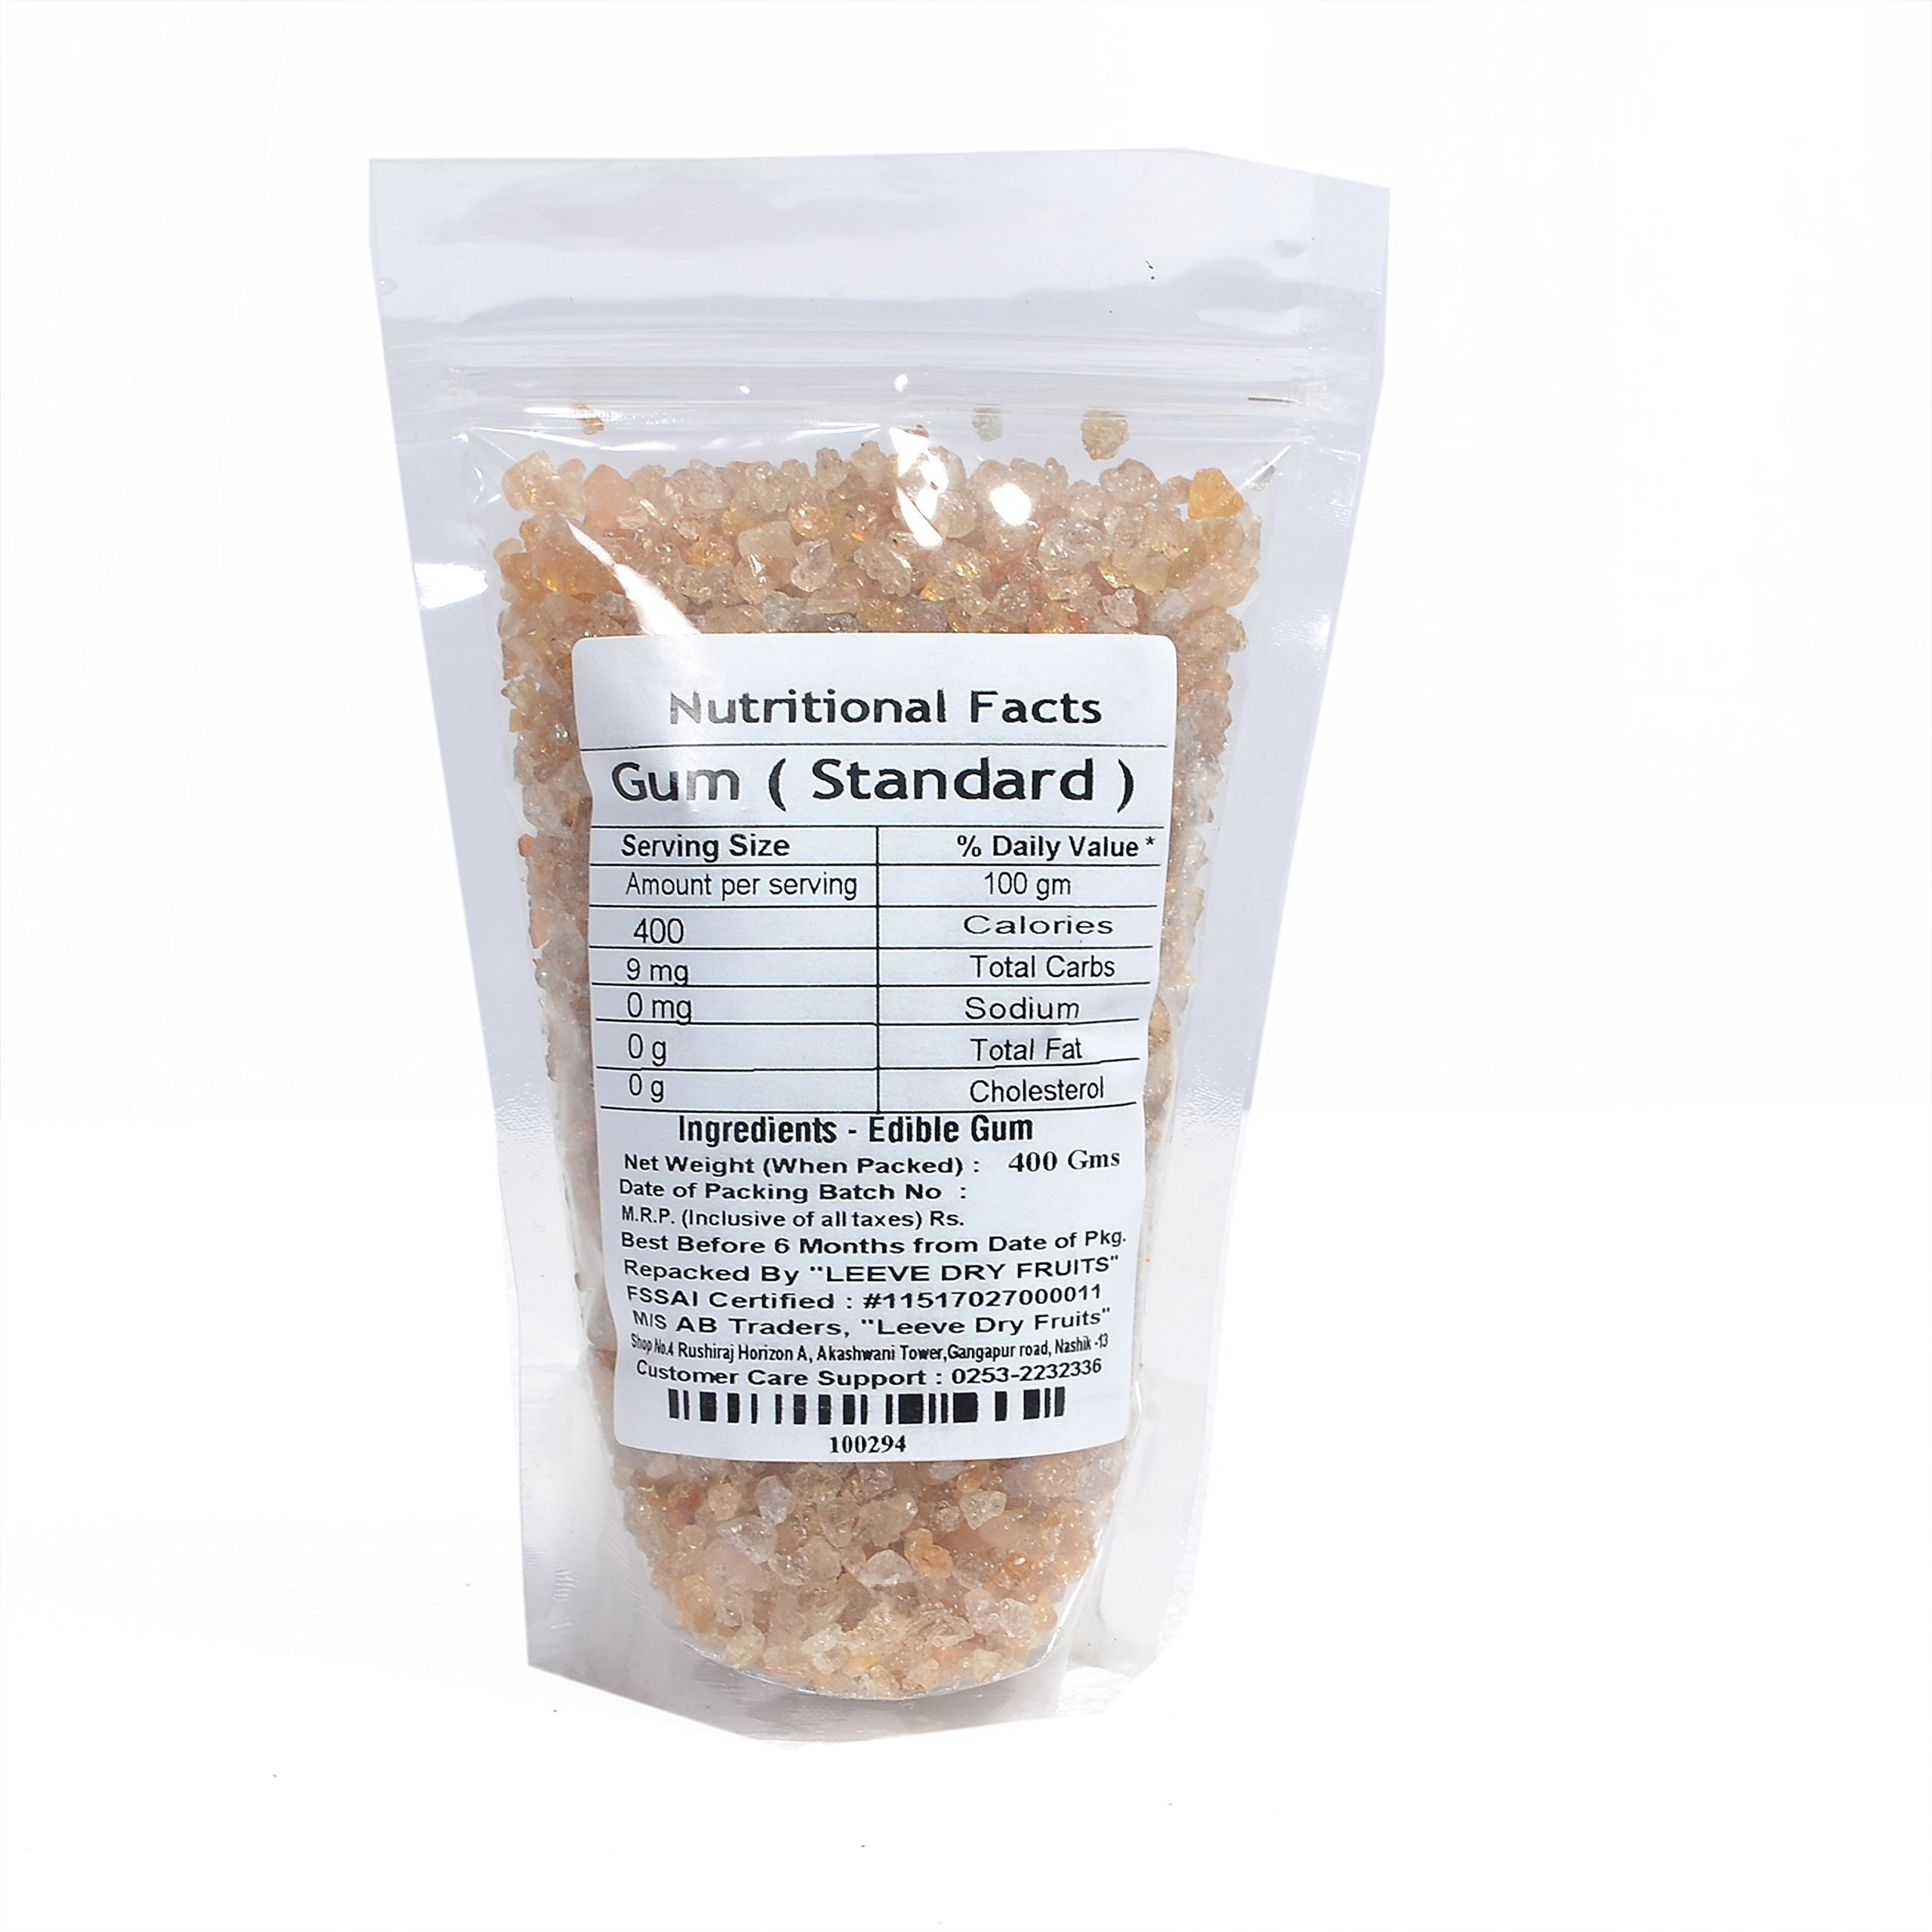 Leeve Dry Fruits Dink - Gond Standard - 400 Grams by Leeve Dry Fruits (Image #2)